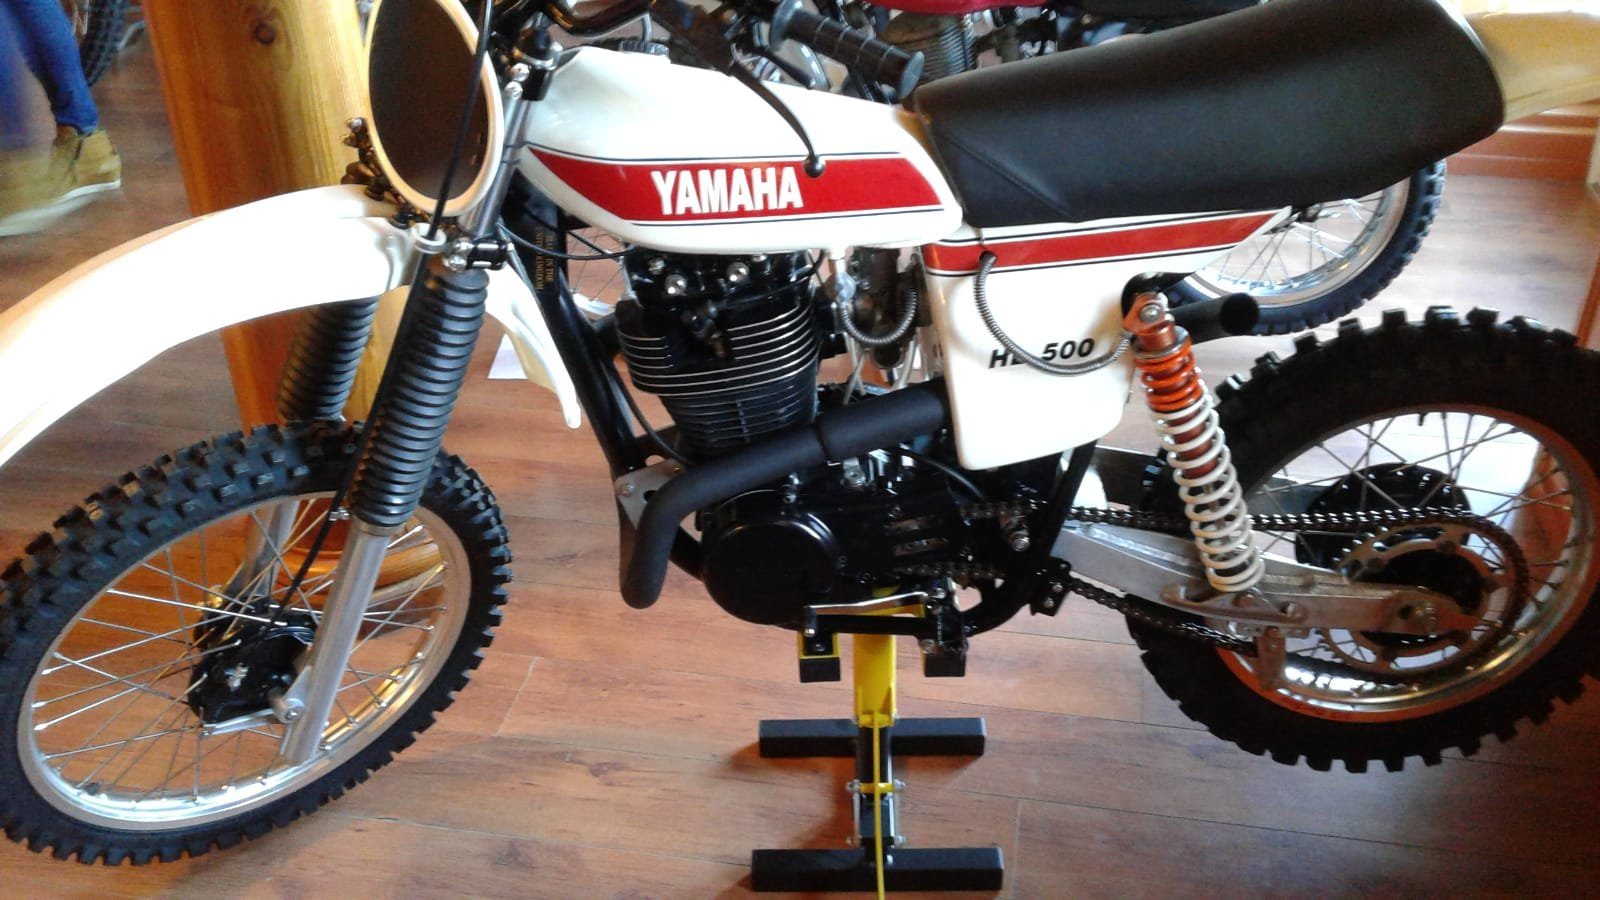 1978 Yamaha HL 500 For Sale (picture 3 of 4)